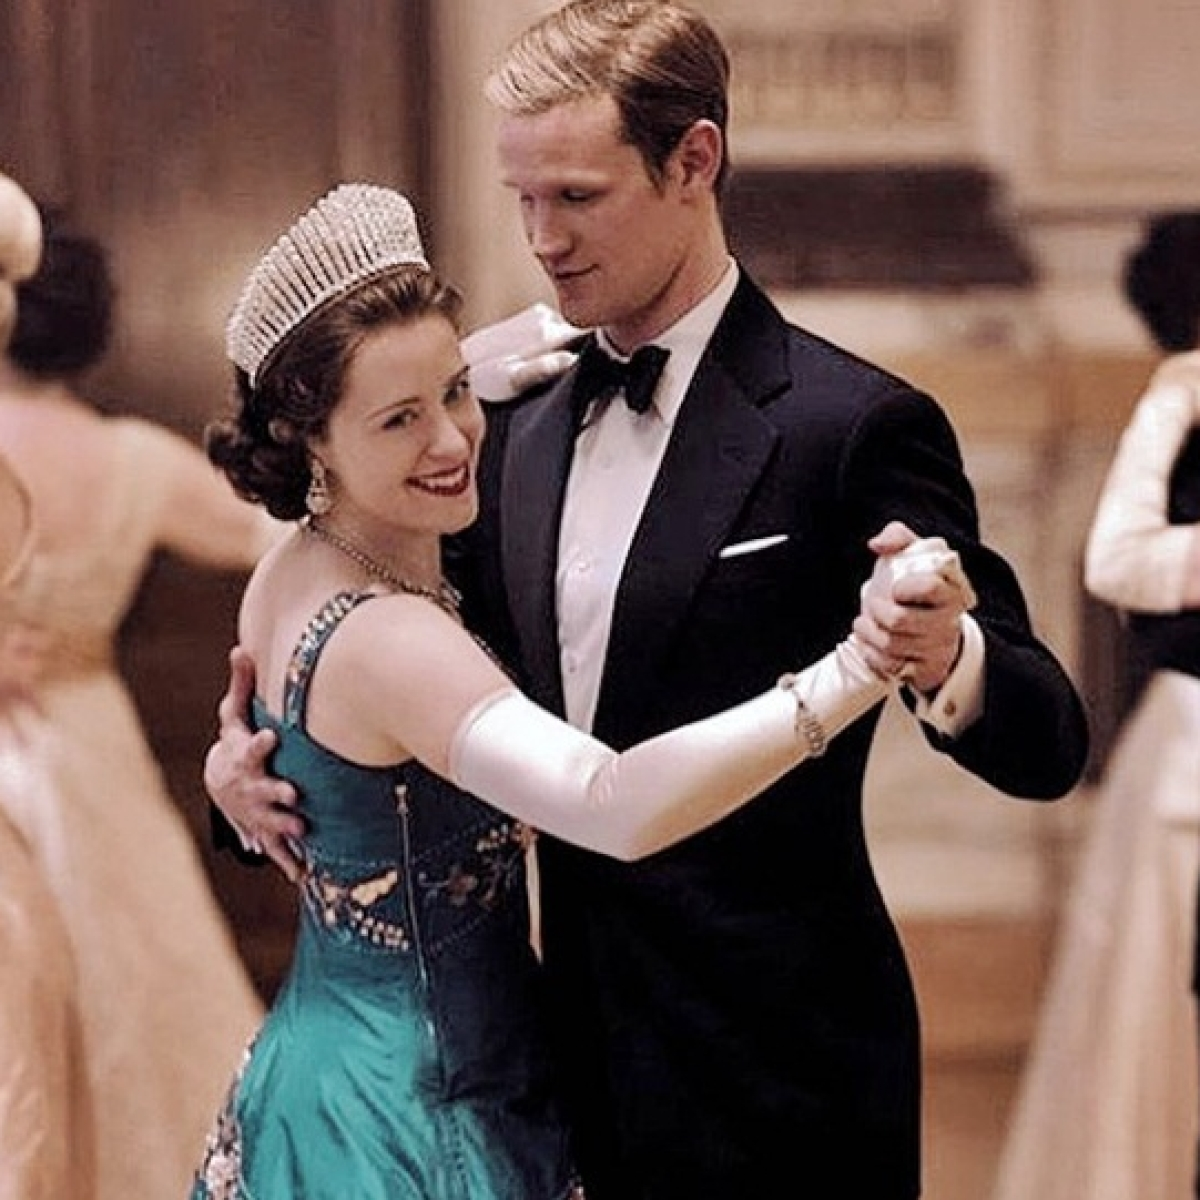 Netflix announces 'The Crown' season 3 premiere date